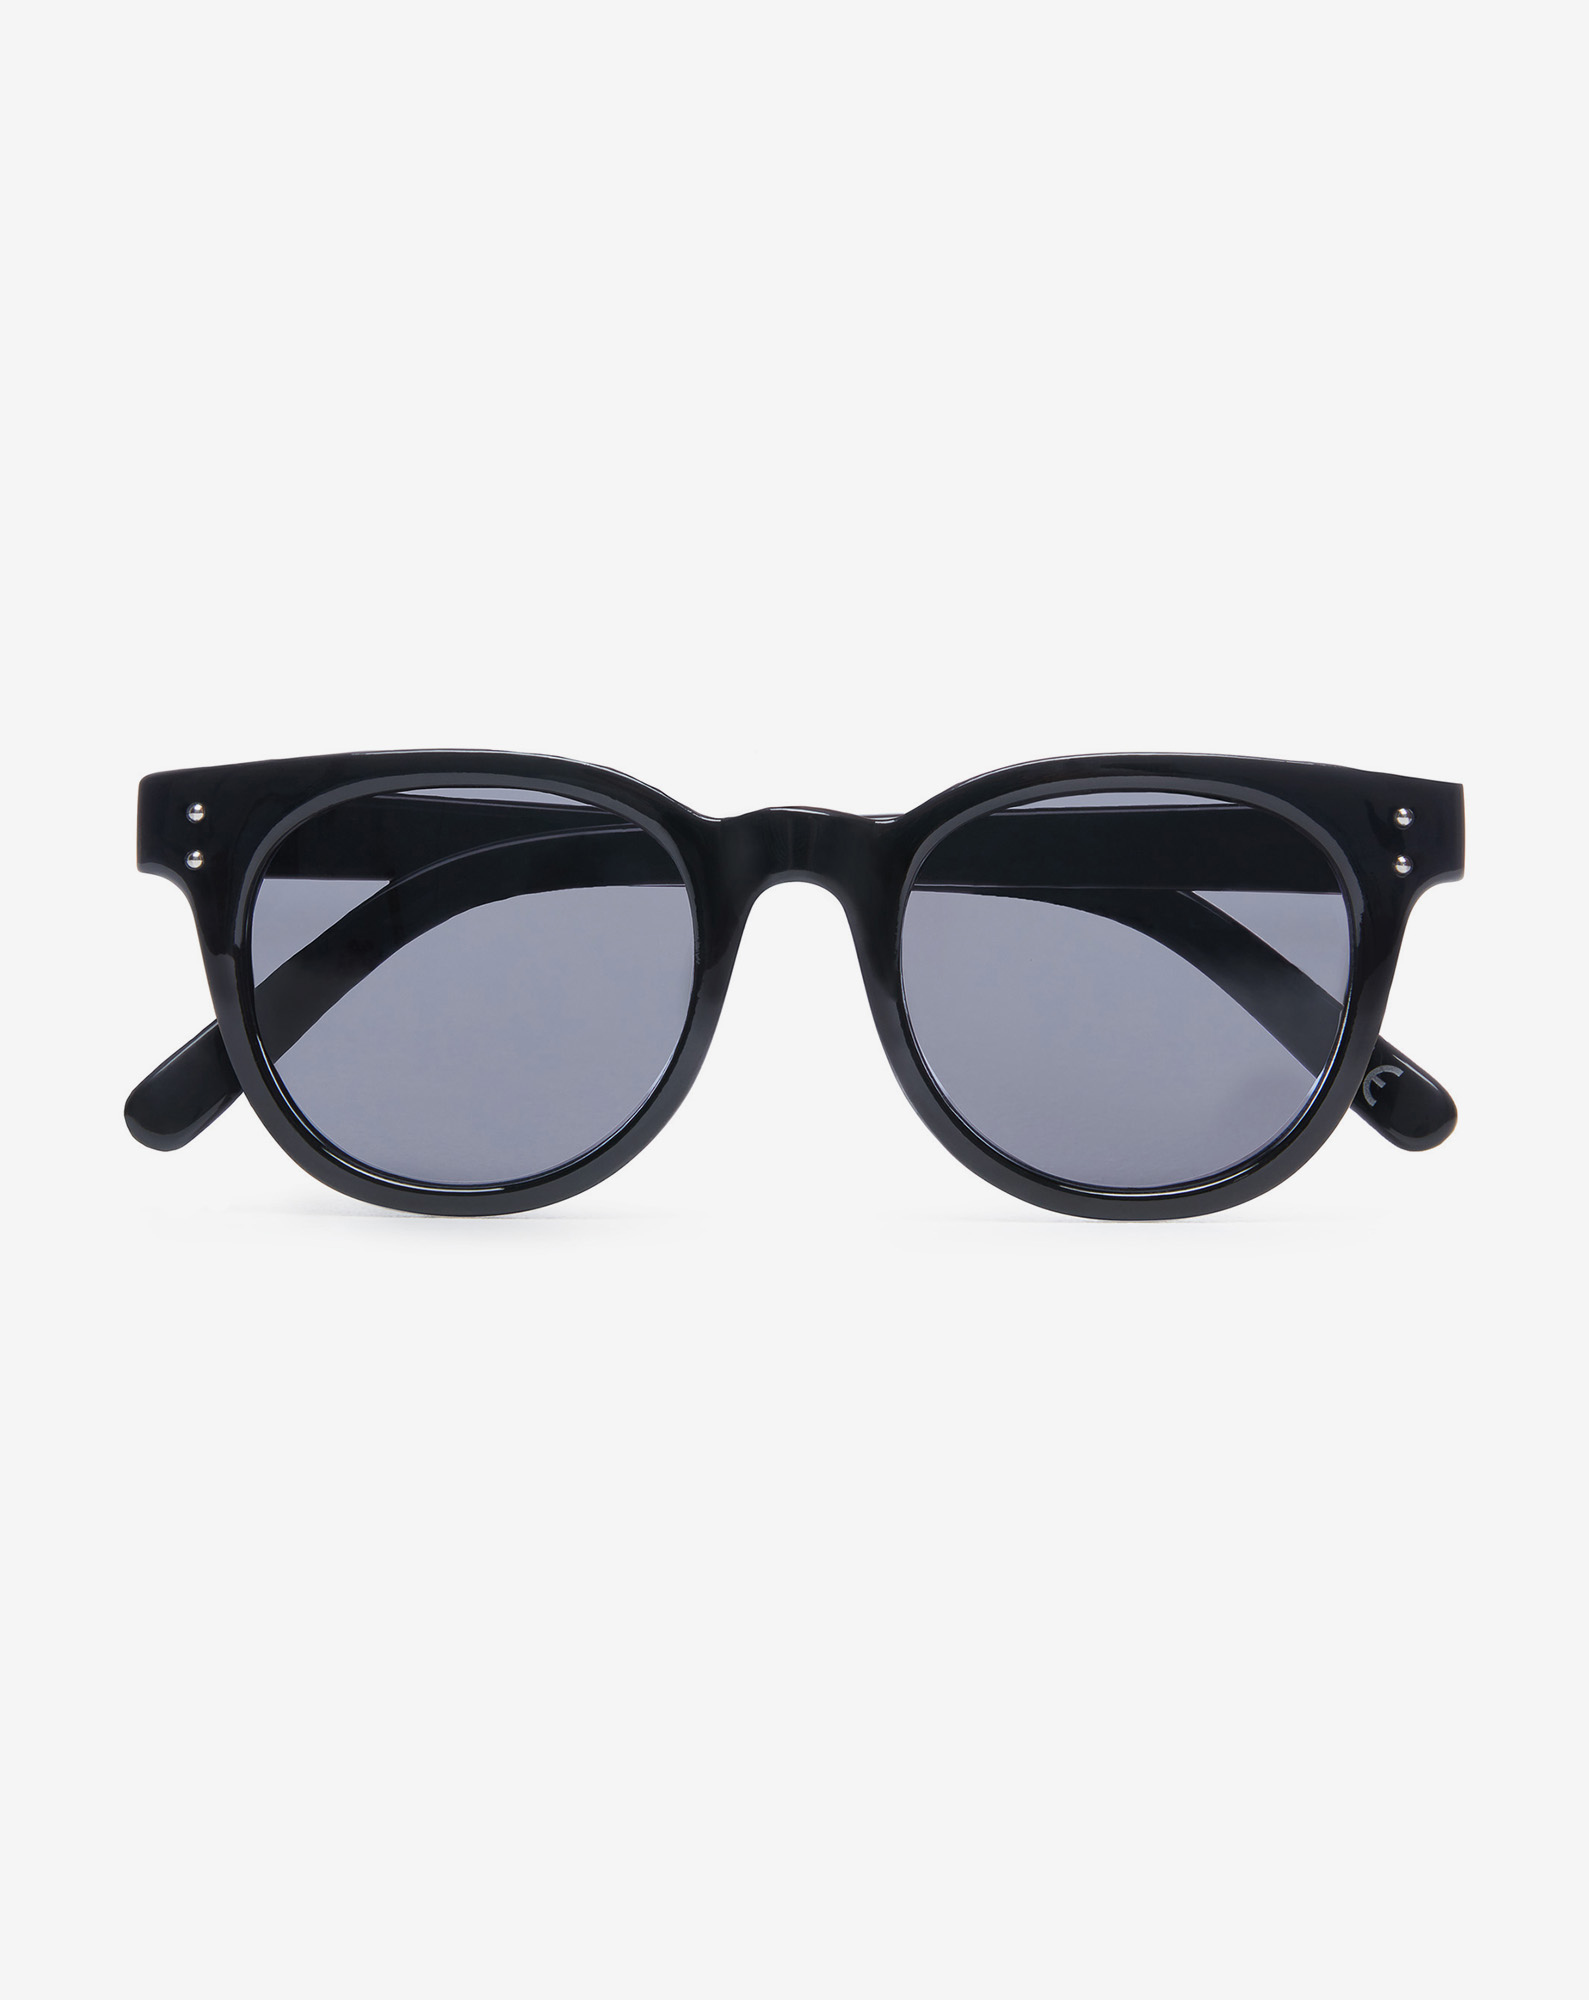 MN WELBORN SHADES Black Gloss